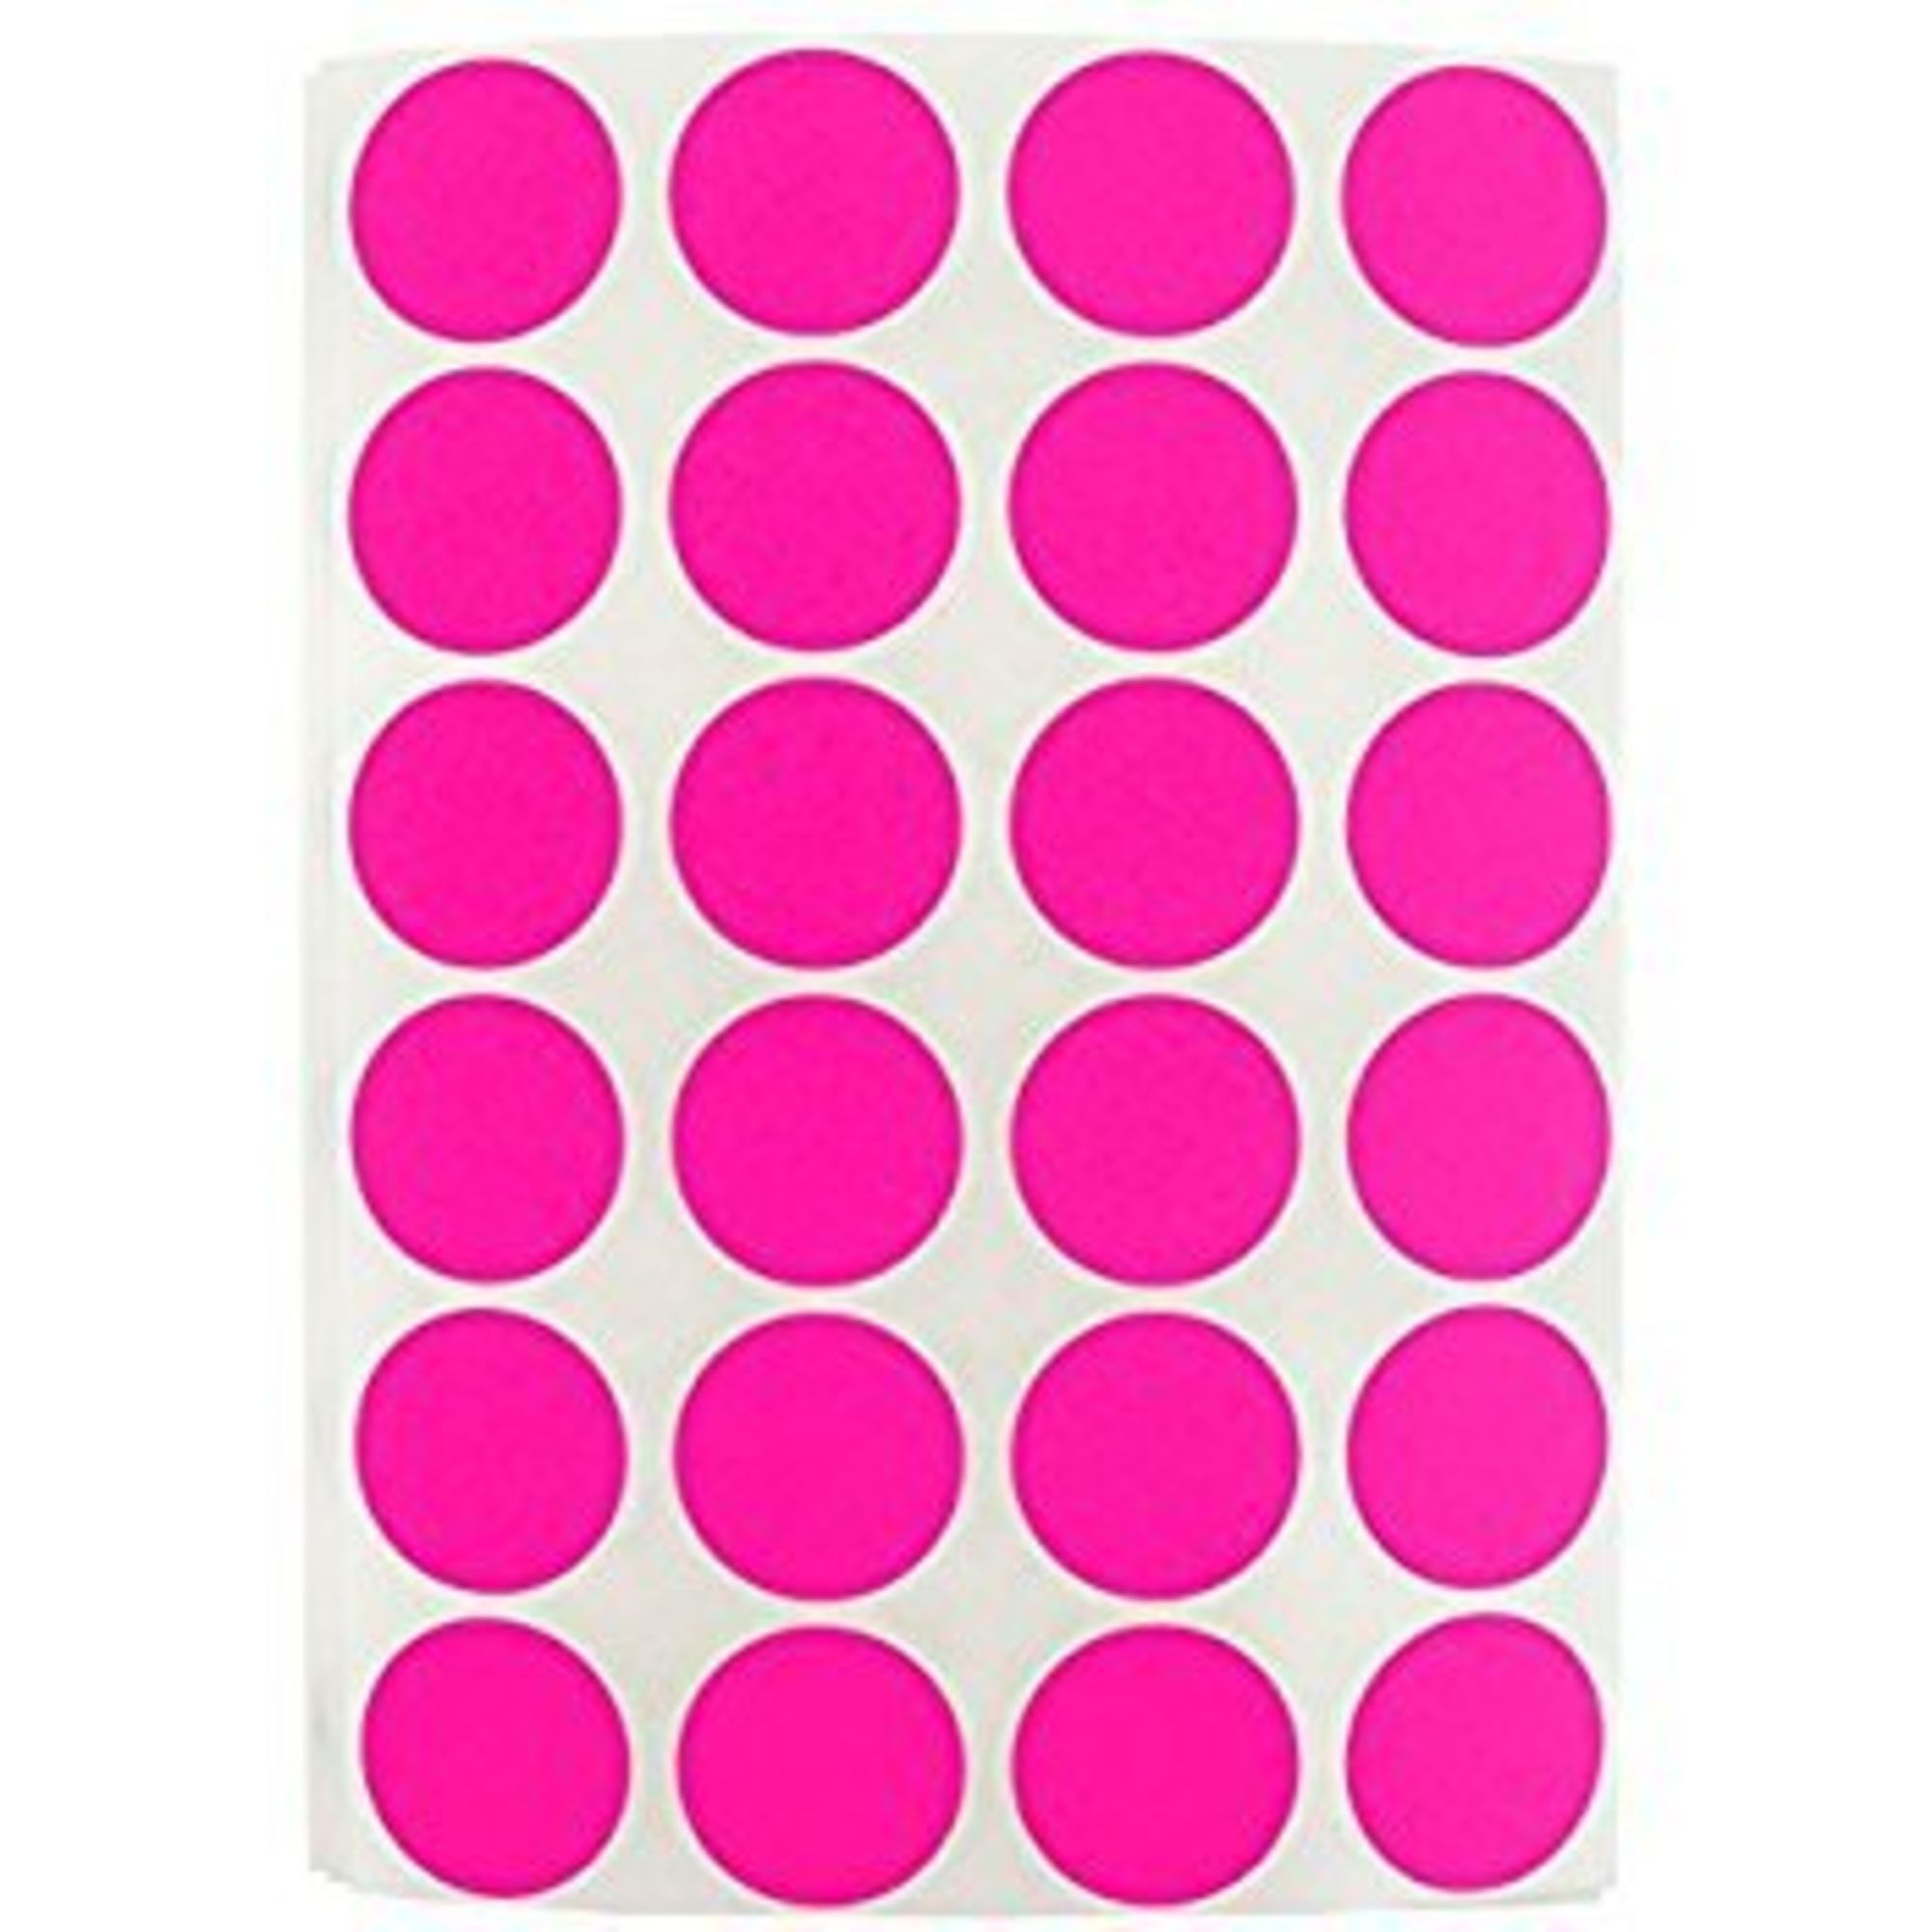 Preferred postage supplies color coding labels super bright fluorescent neon pink round circle dots for organizing